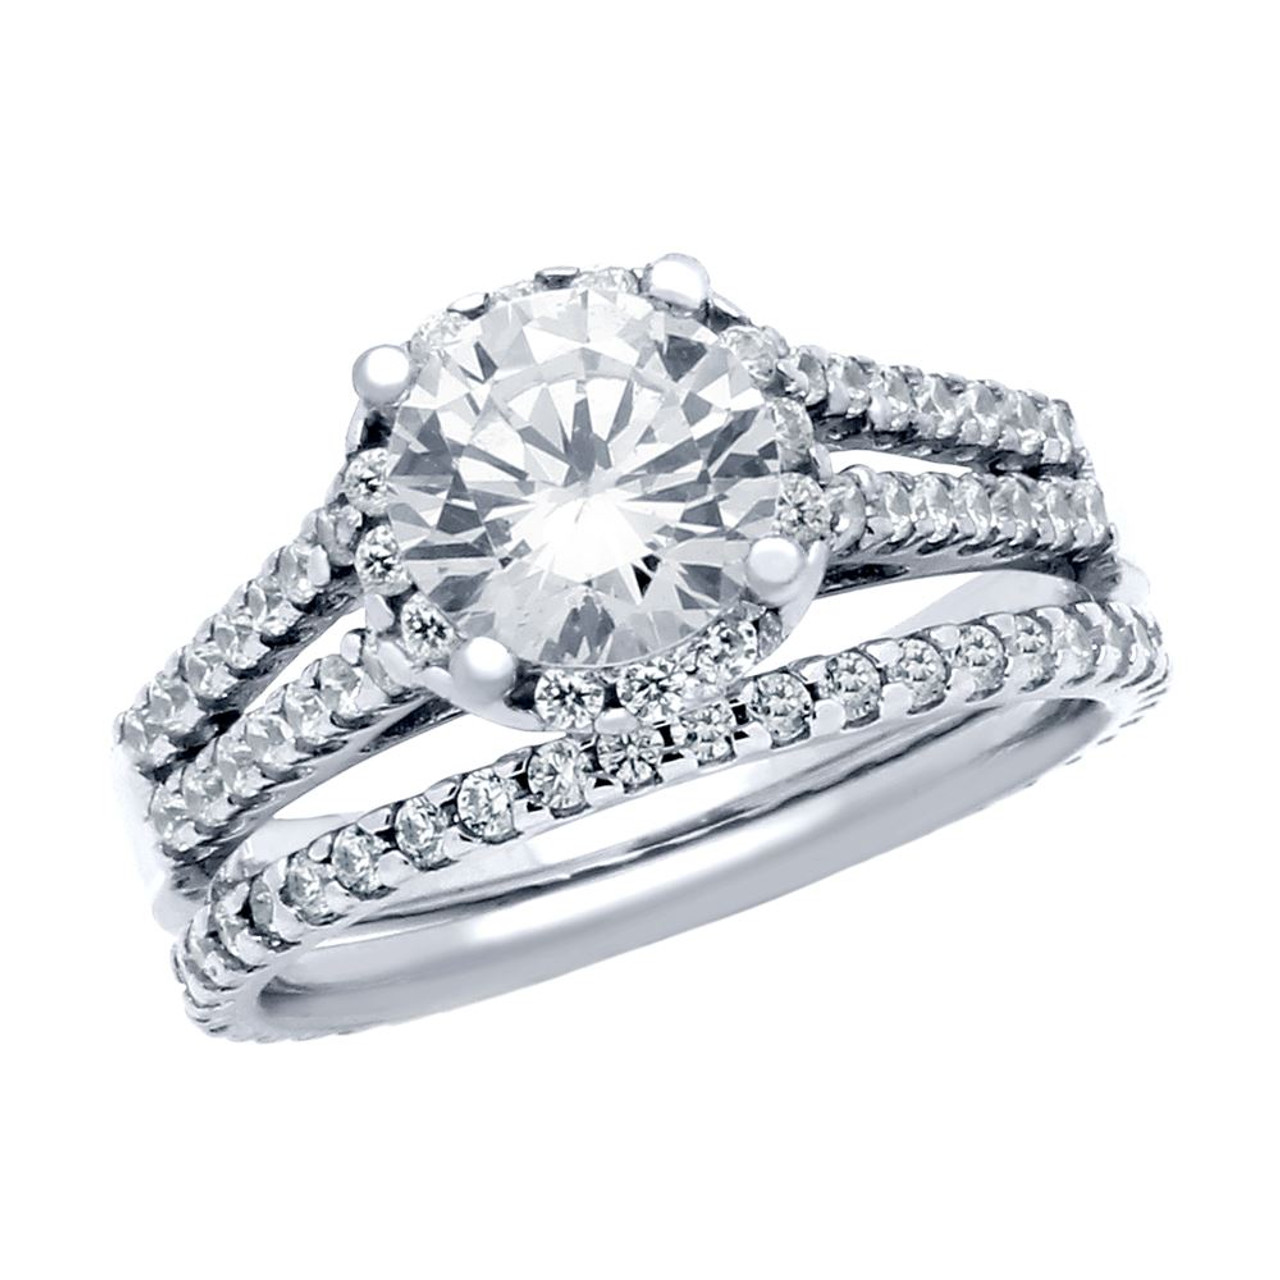 rhodium plated round cz high double row setting ring and eternity band wedding set - Double Band Wedding Ring